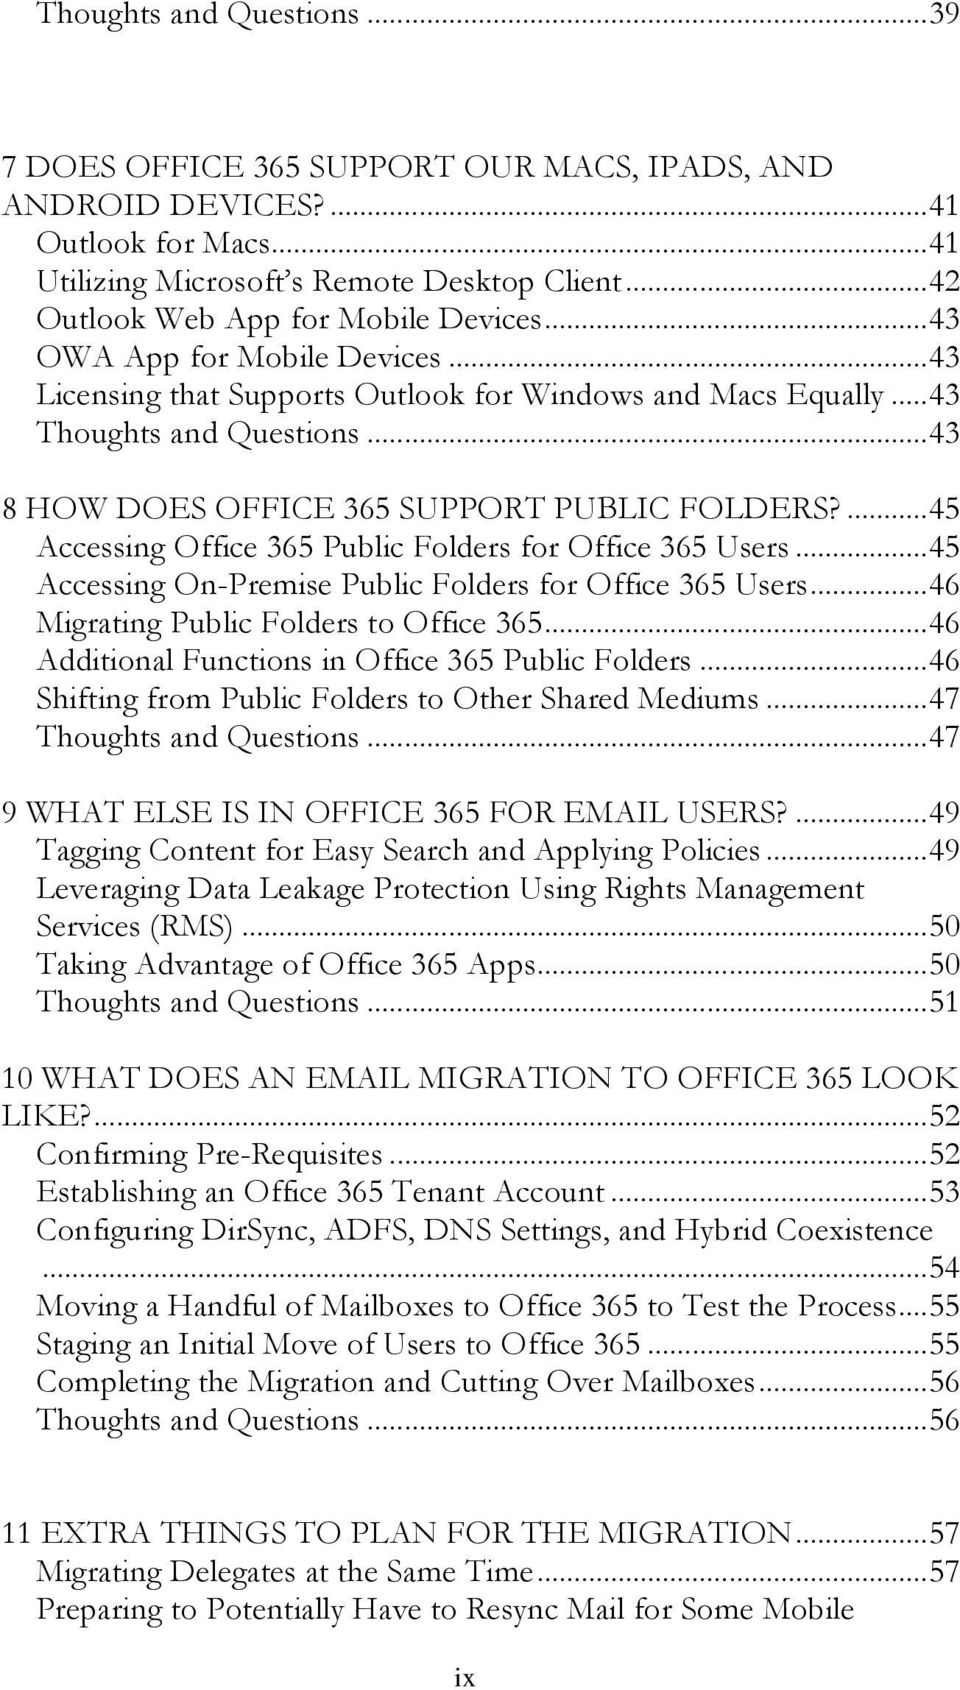 .. 43 8 HOW DOES OFFICE 365 SUPPORT PUBLIC FOLDERS?... 45 Accessing Office 365 Public Folders for Office 365 Users... 45 Accessing On-Premise Public Folders for Office 365 Users.